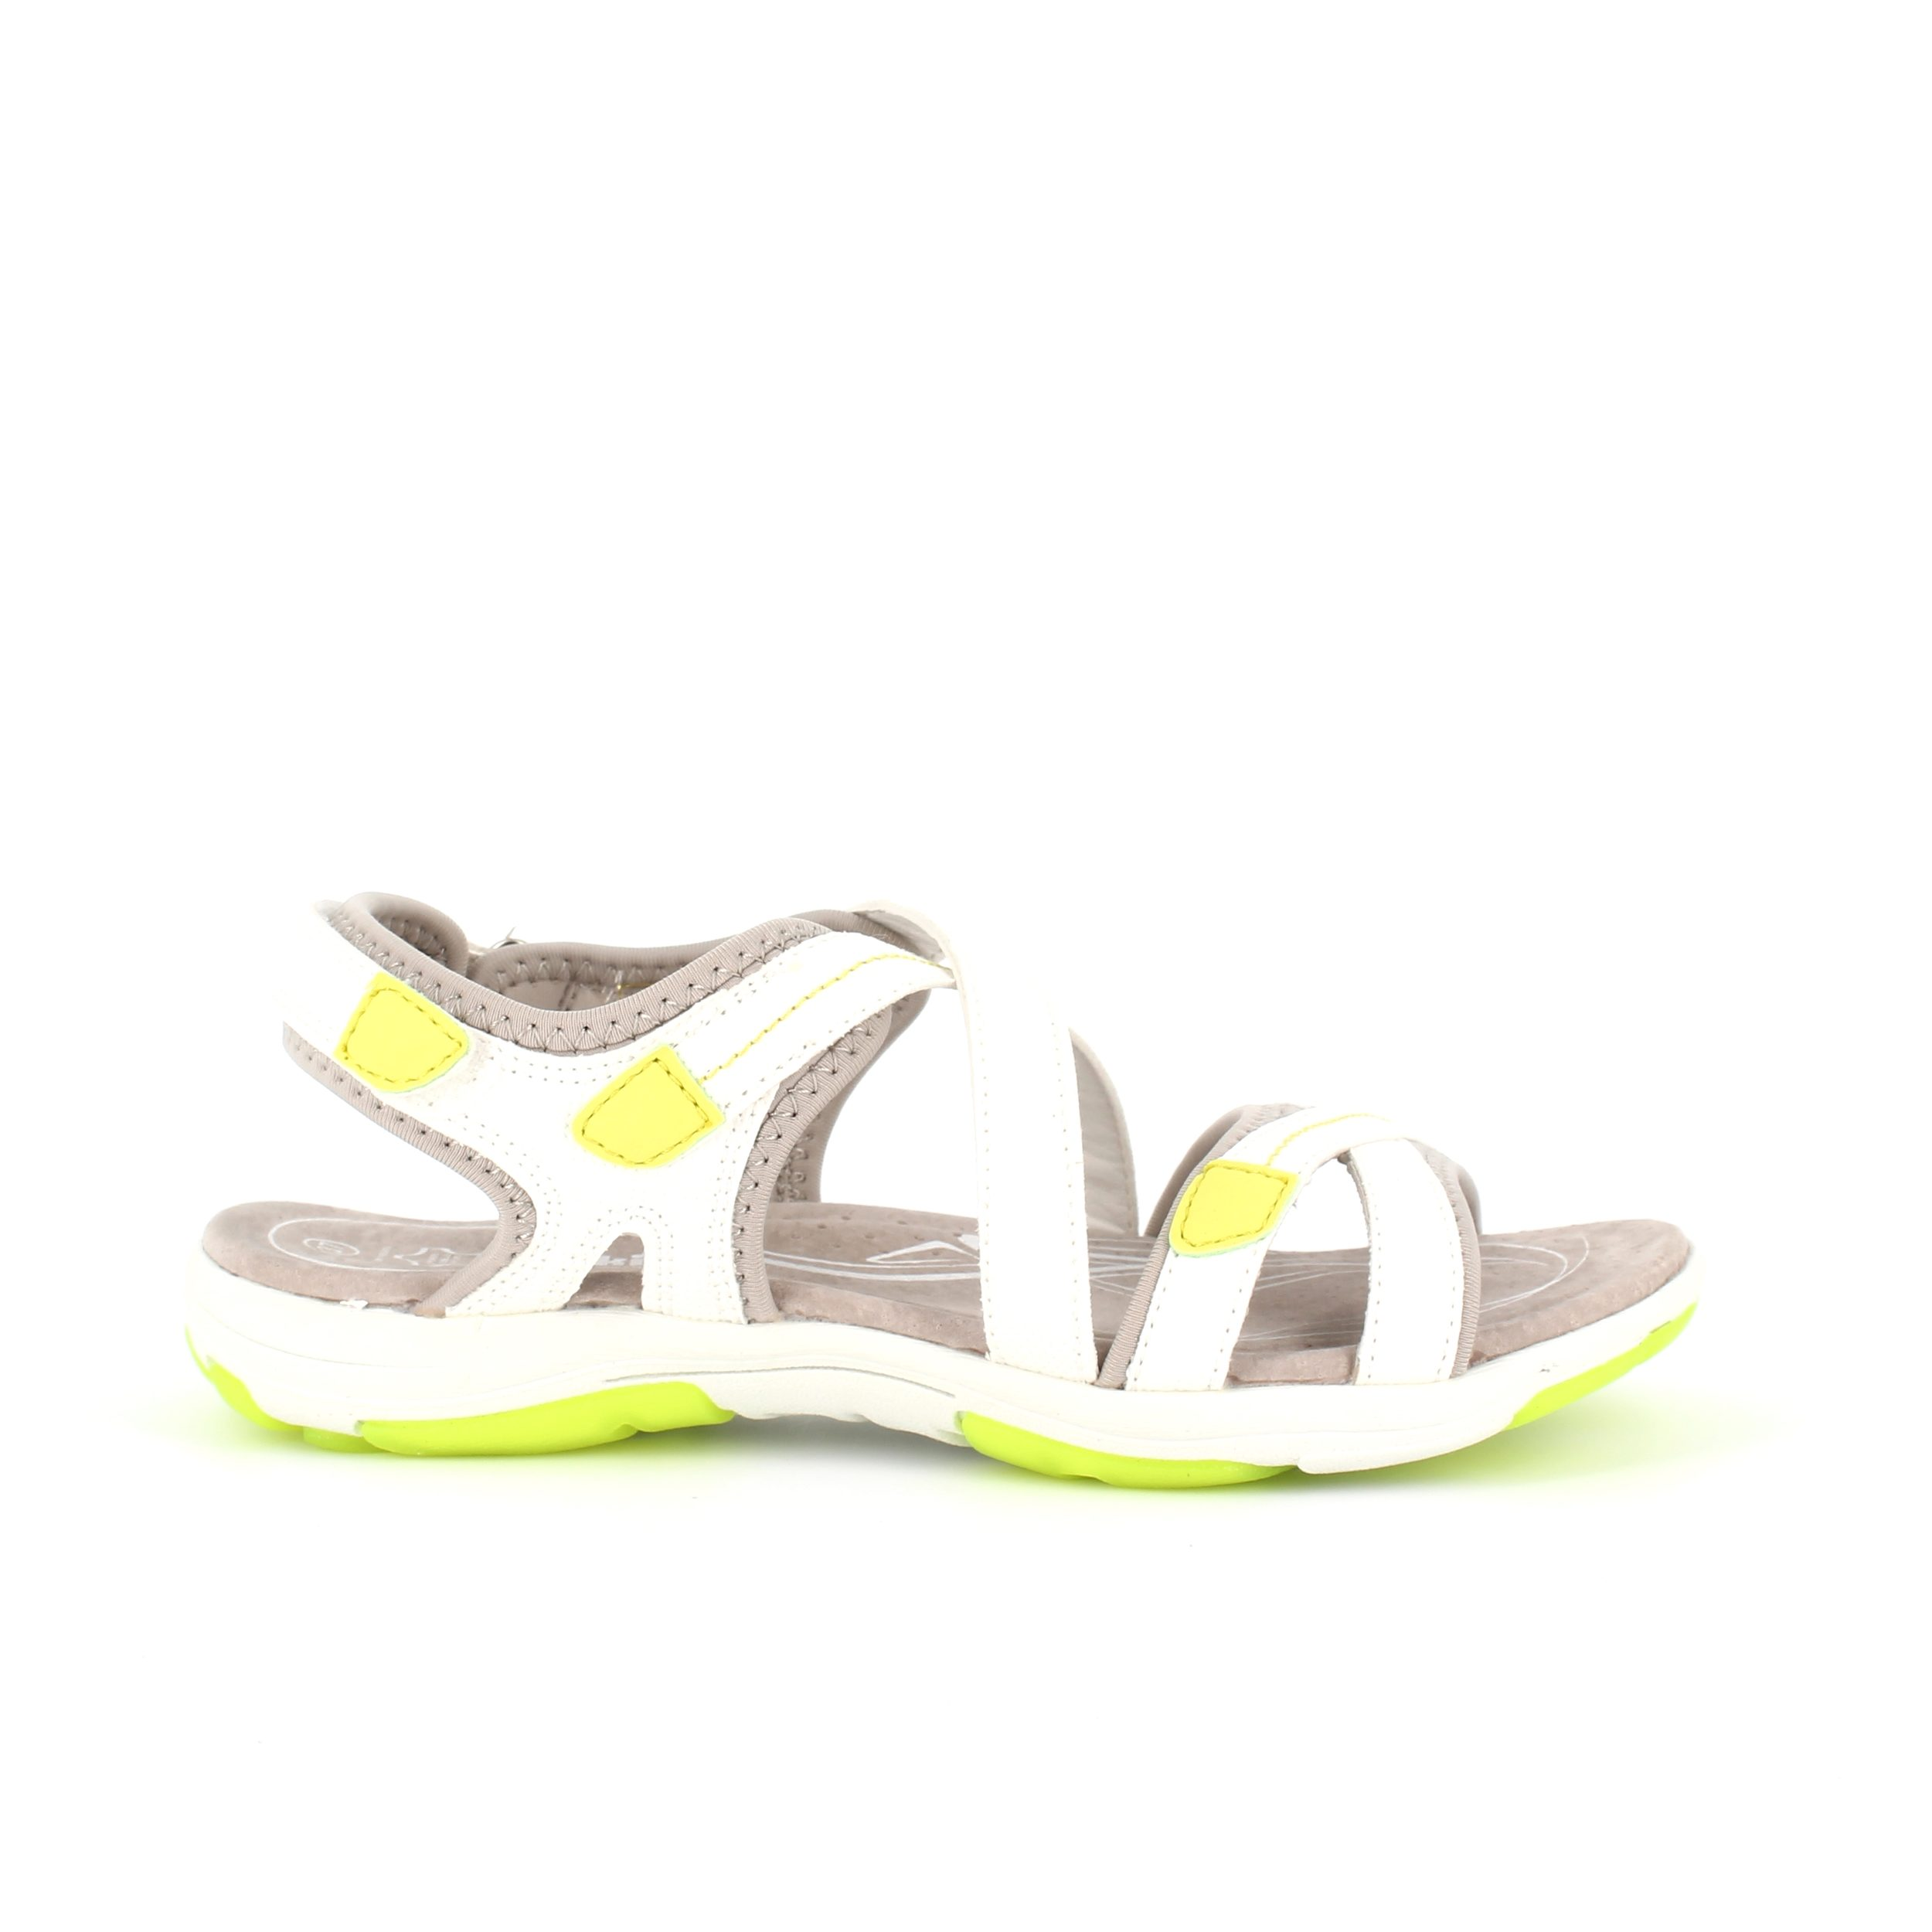 Image of   Smart sandal i frisk hvid og lime - 40